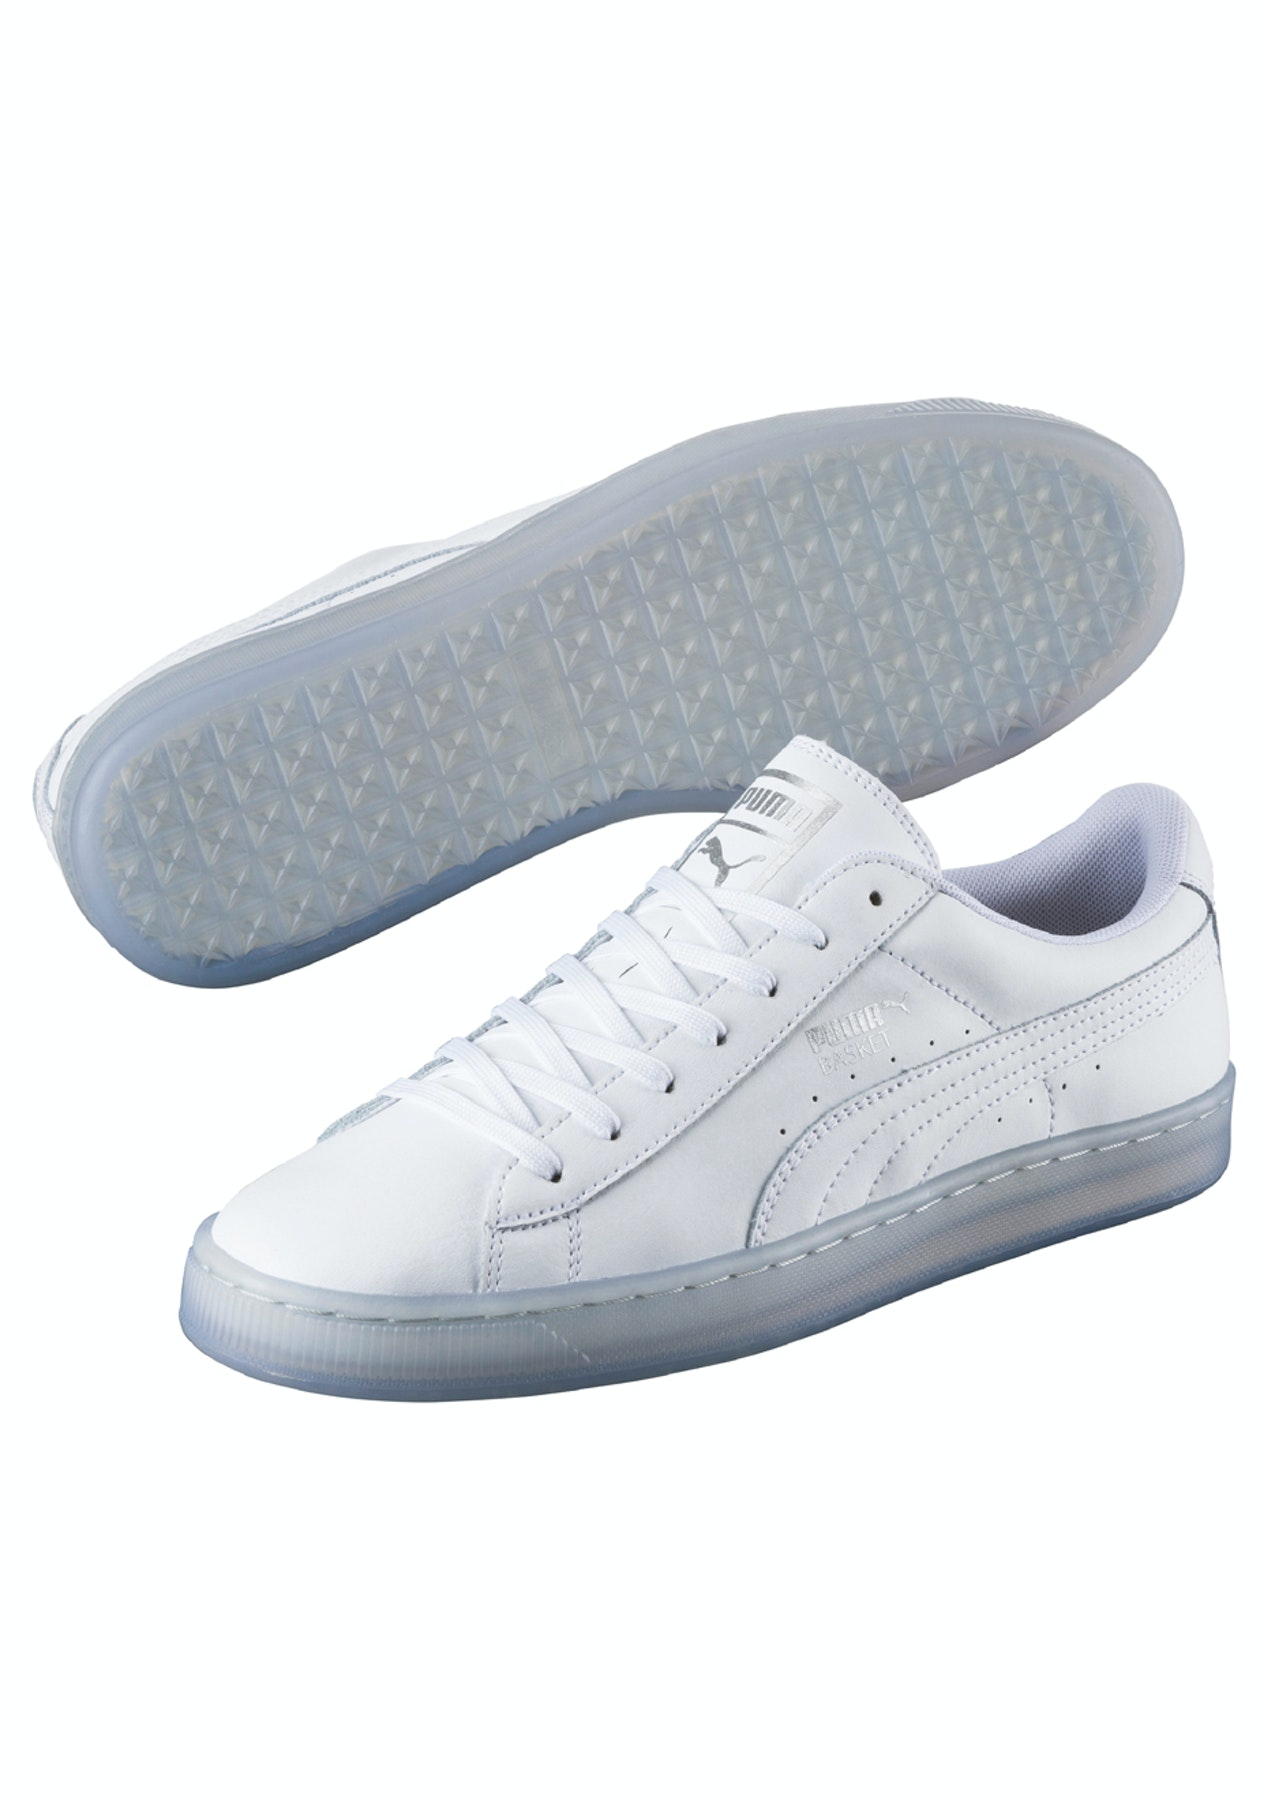 d78234bc4f86 Puma Mens - Basket Classic Fading - Lacoste   More - Onceit